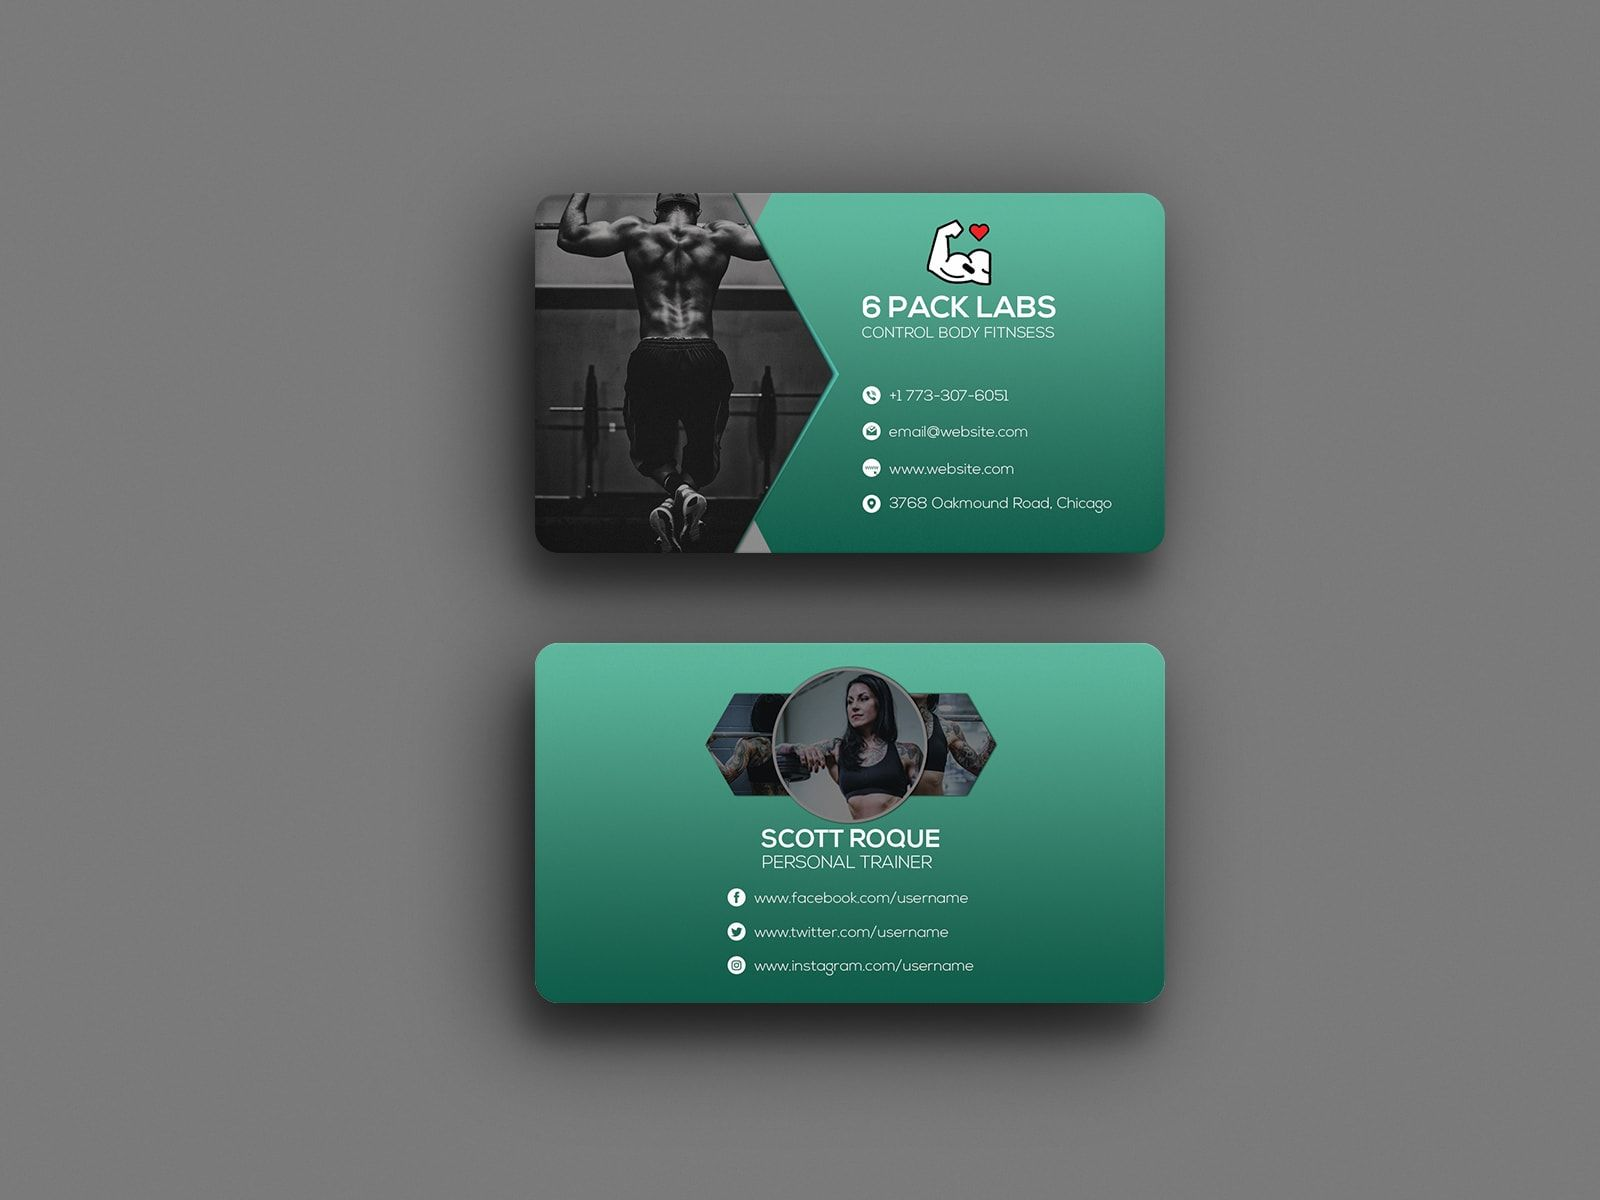 6 Pack Abs Personal Trainer Business Card Personal Trainer Business Card Personal Business Cards Personal Trainer Business